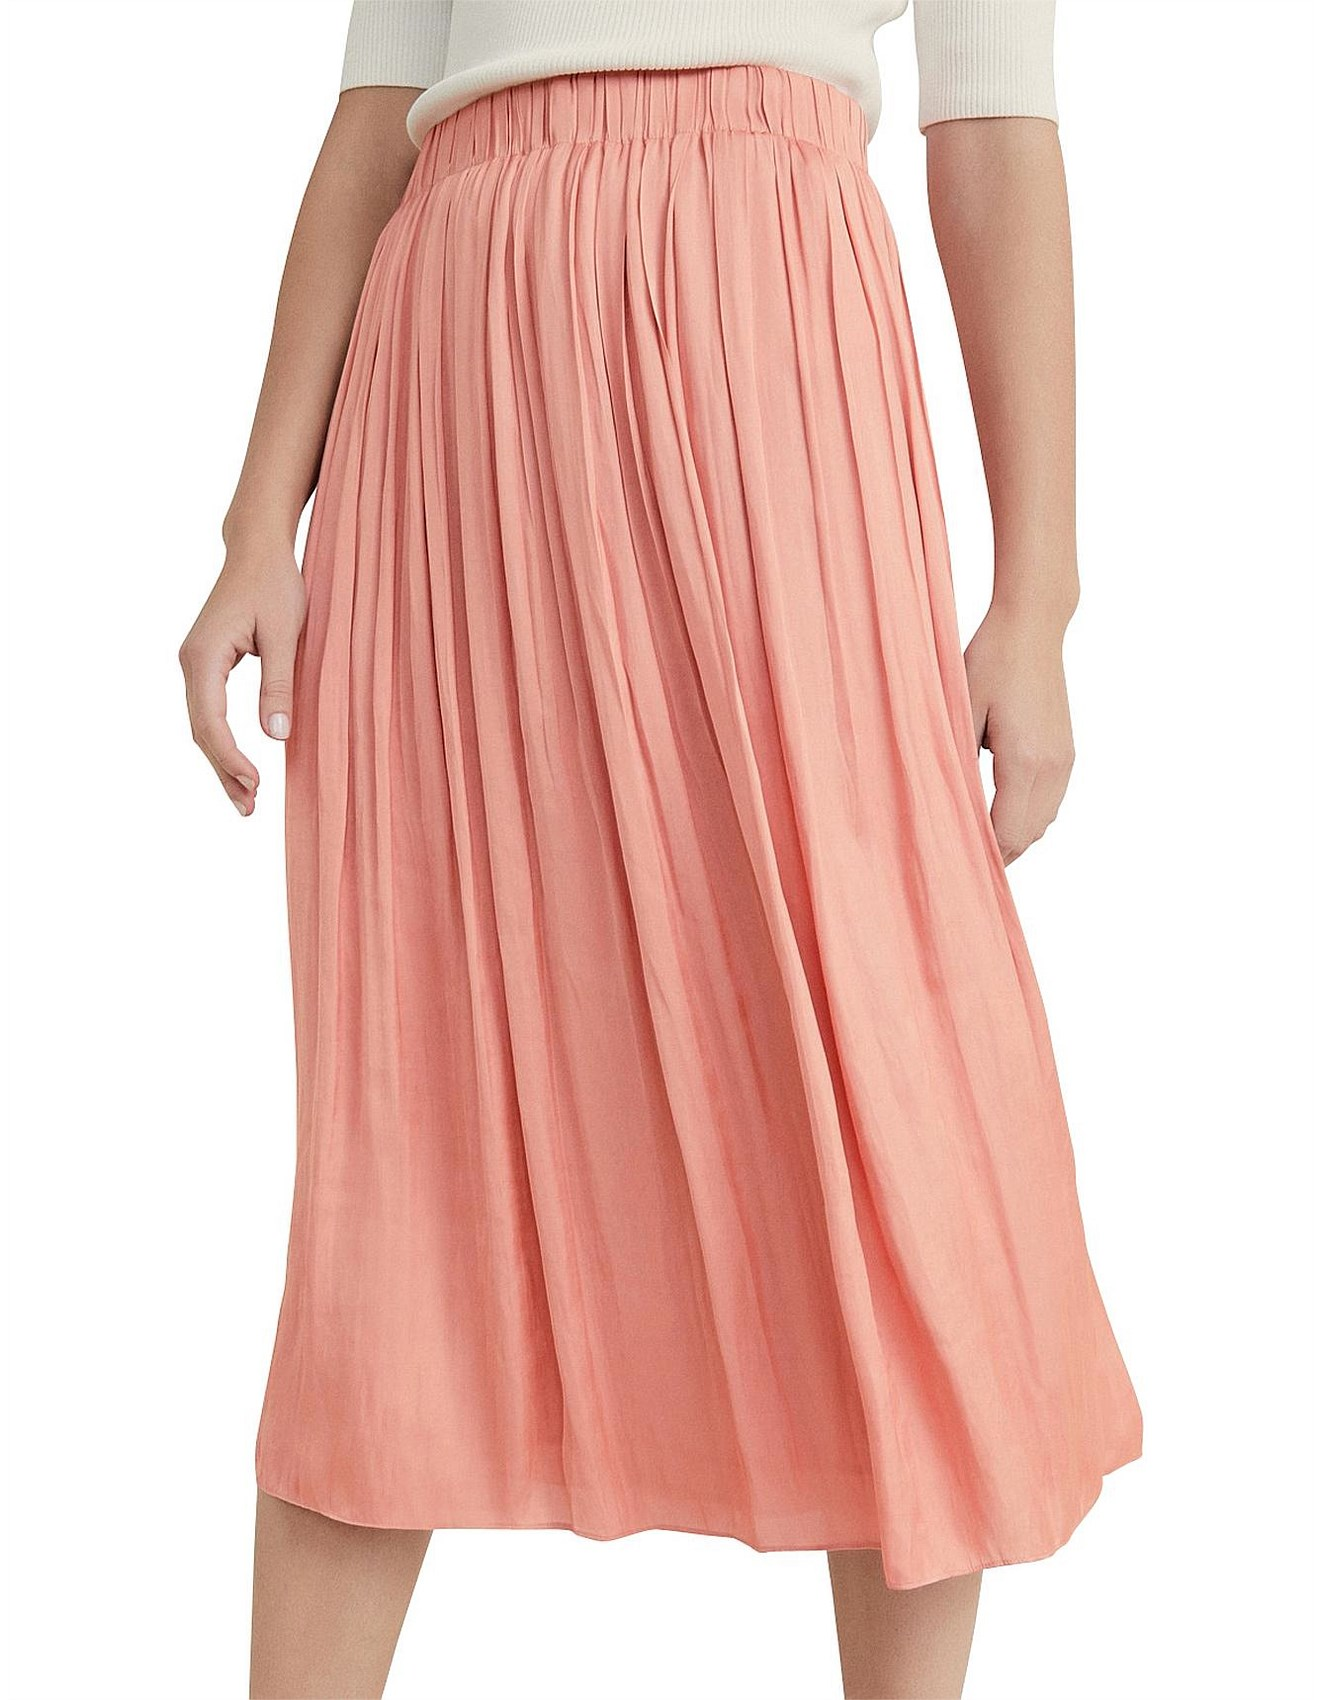 9a2df5d98 Witchery | Witchery Dresses, Shoes & Clothing | David Jones - Soft Pleat  Skirt